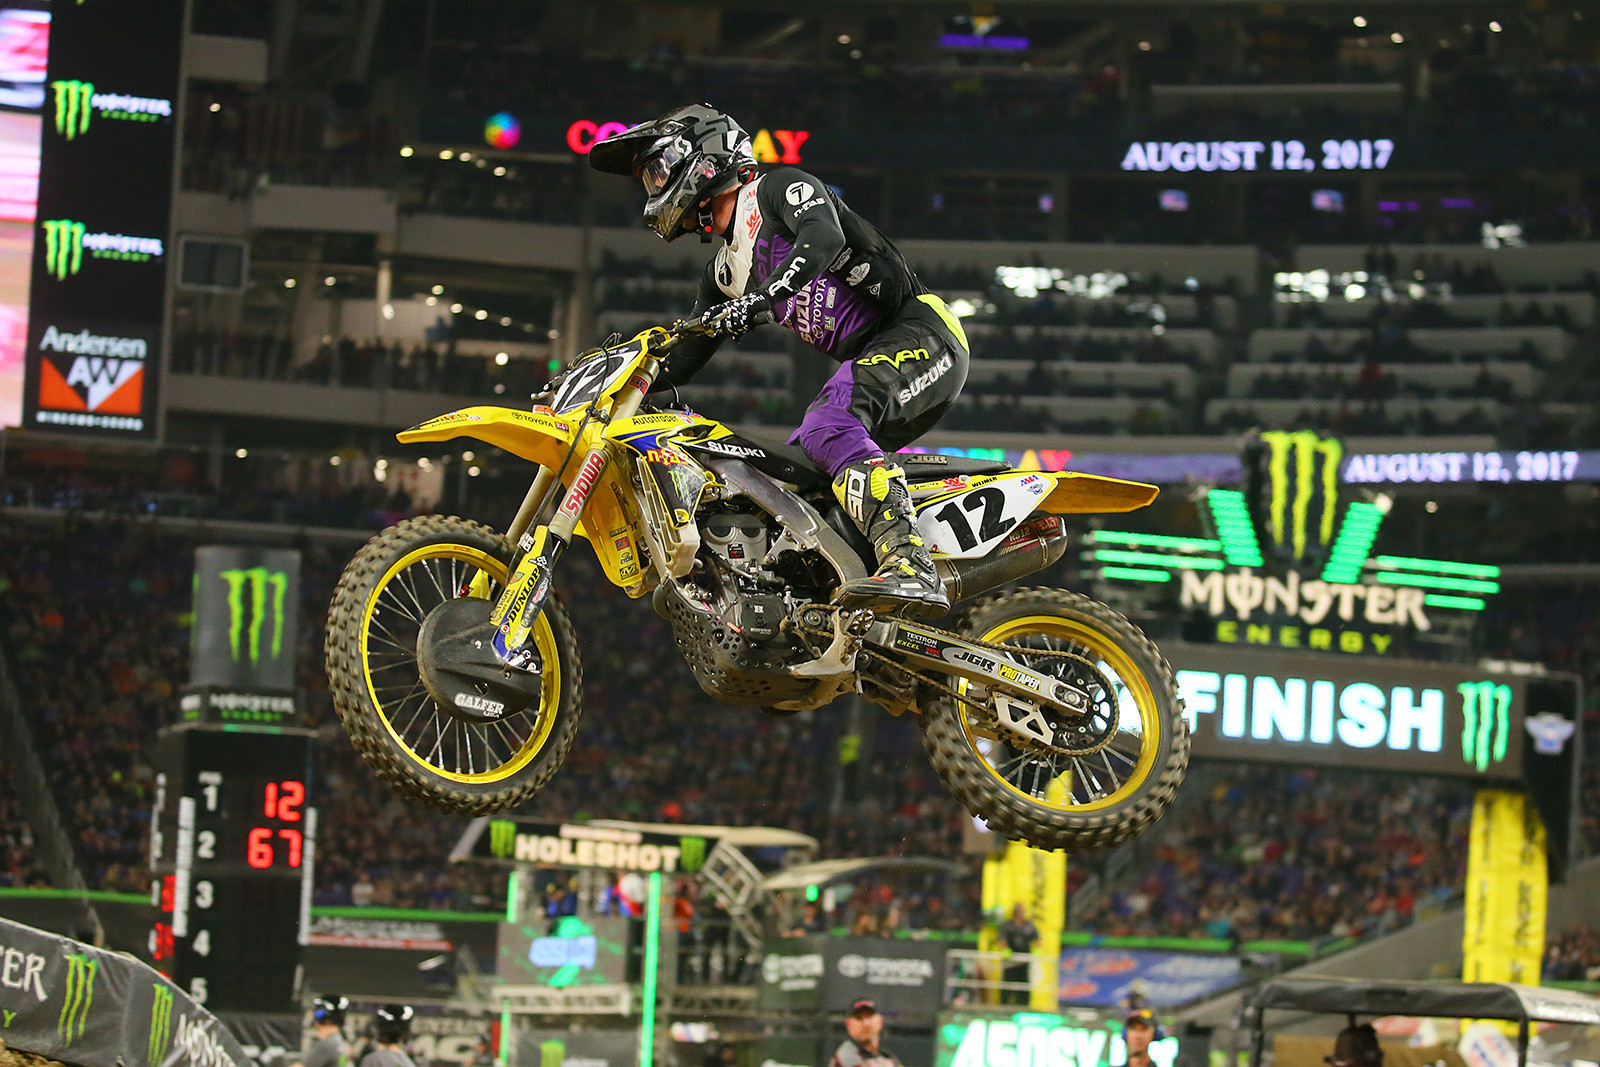 2017 Minneapolis Supercross